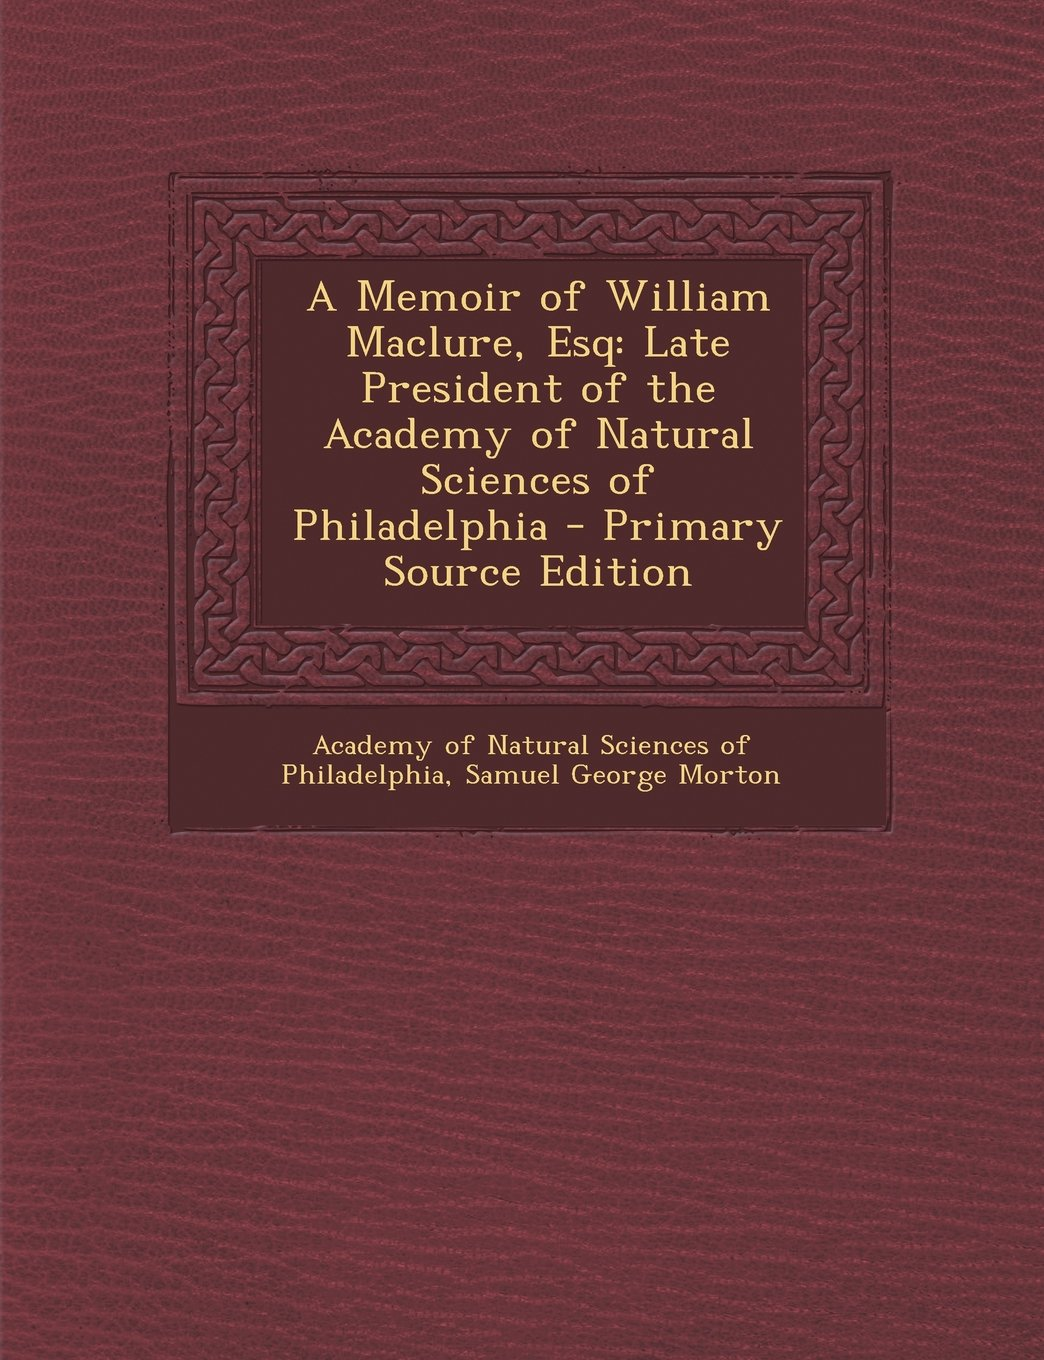 Download A Memoir of William Maclure, Esq: Late President of the Academy of Natural Sciences of Philadelphia PDF